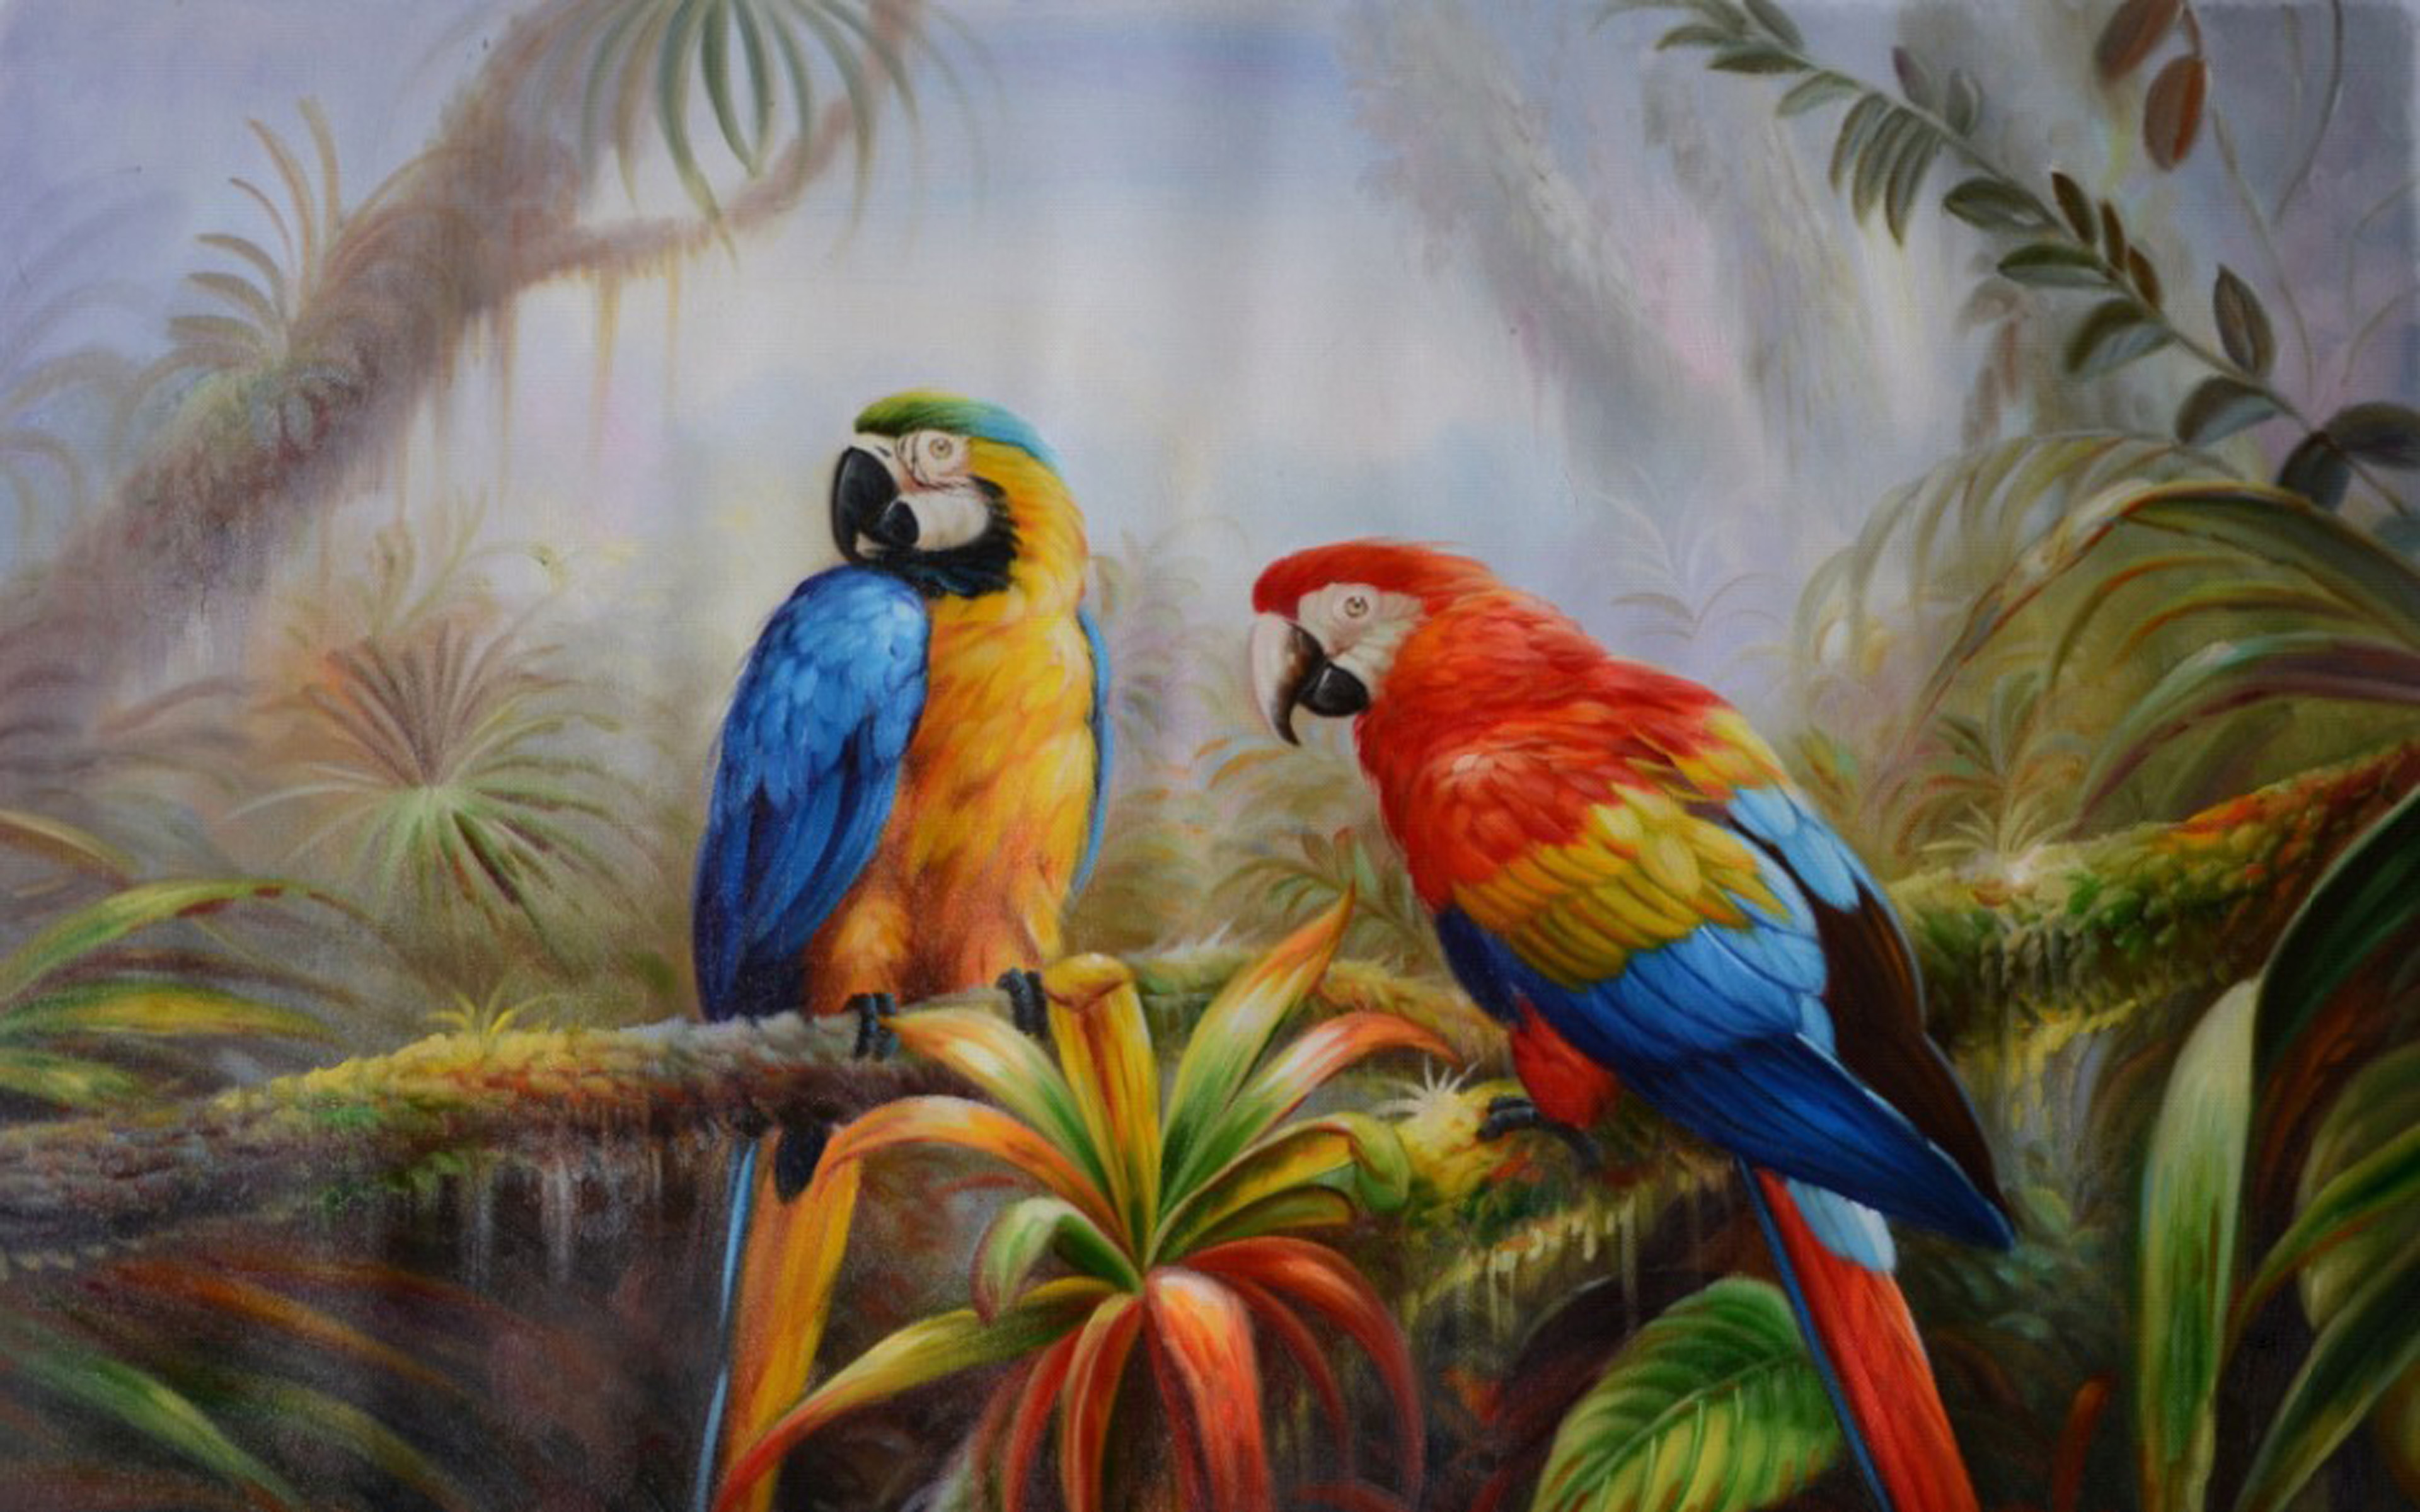 Fantasy Forest 3d Desktop Wallpaper Jungle Parrot Exotic Birds Pictures Download Hd Wallpaper